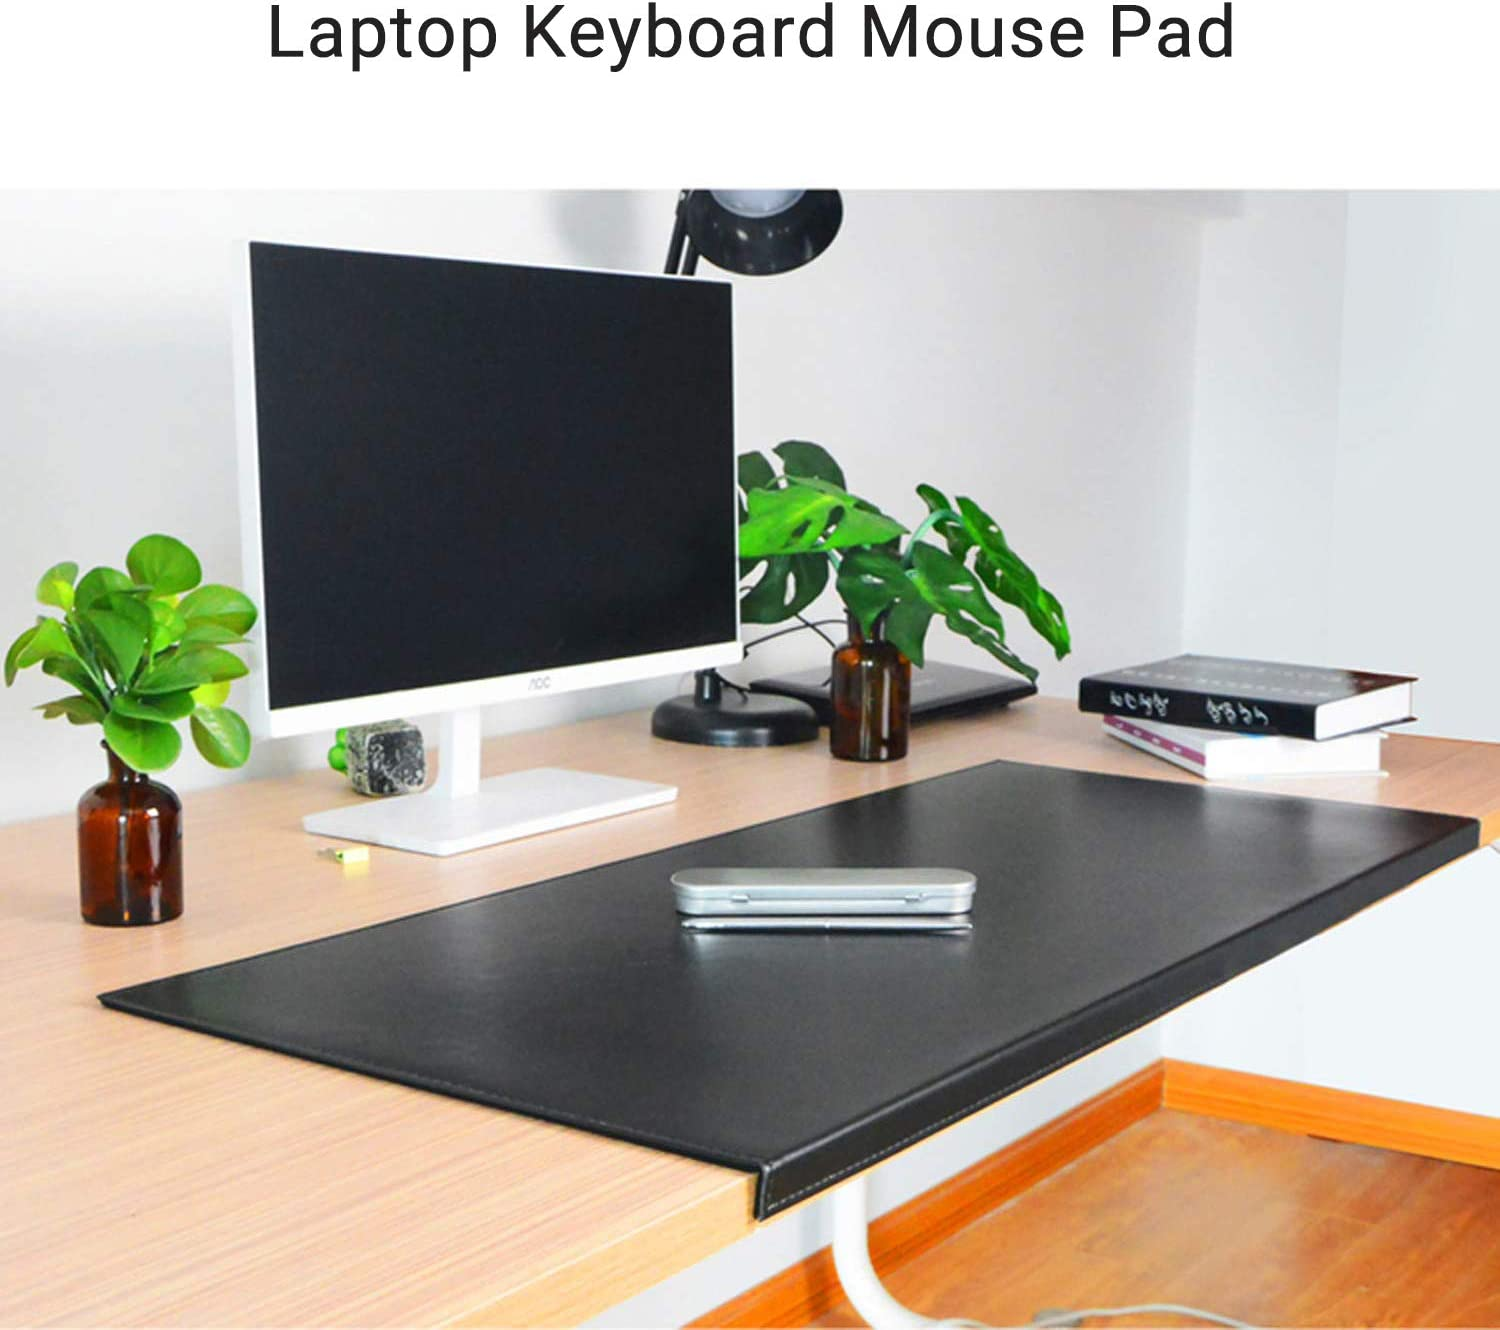 PU Leather Office Desk Mouse Mat with Full Grip Fixation Lip Table Blotter Desk Pad Protector Waterproof Gaming Writing Mat-White 70x40x2cm DM/&FC Large Mouse Pad